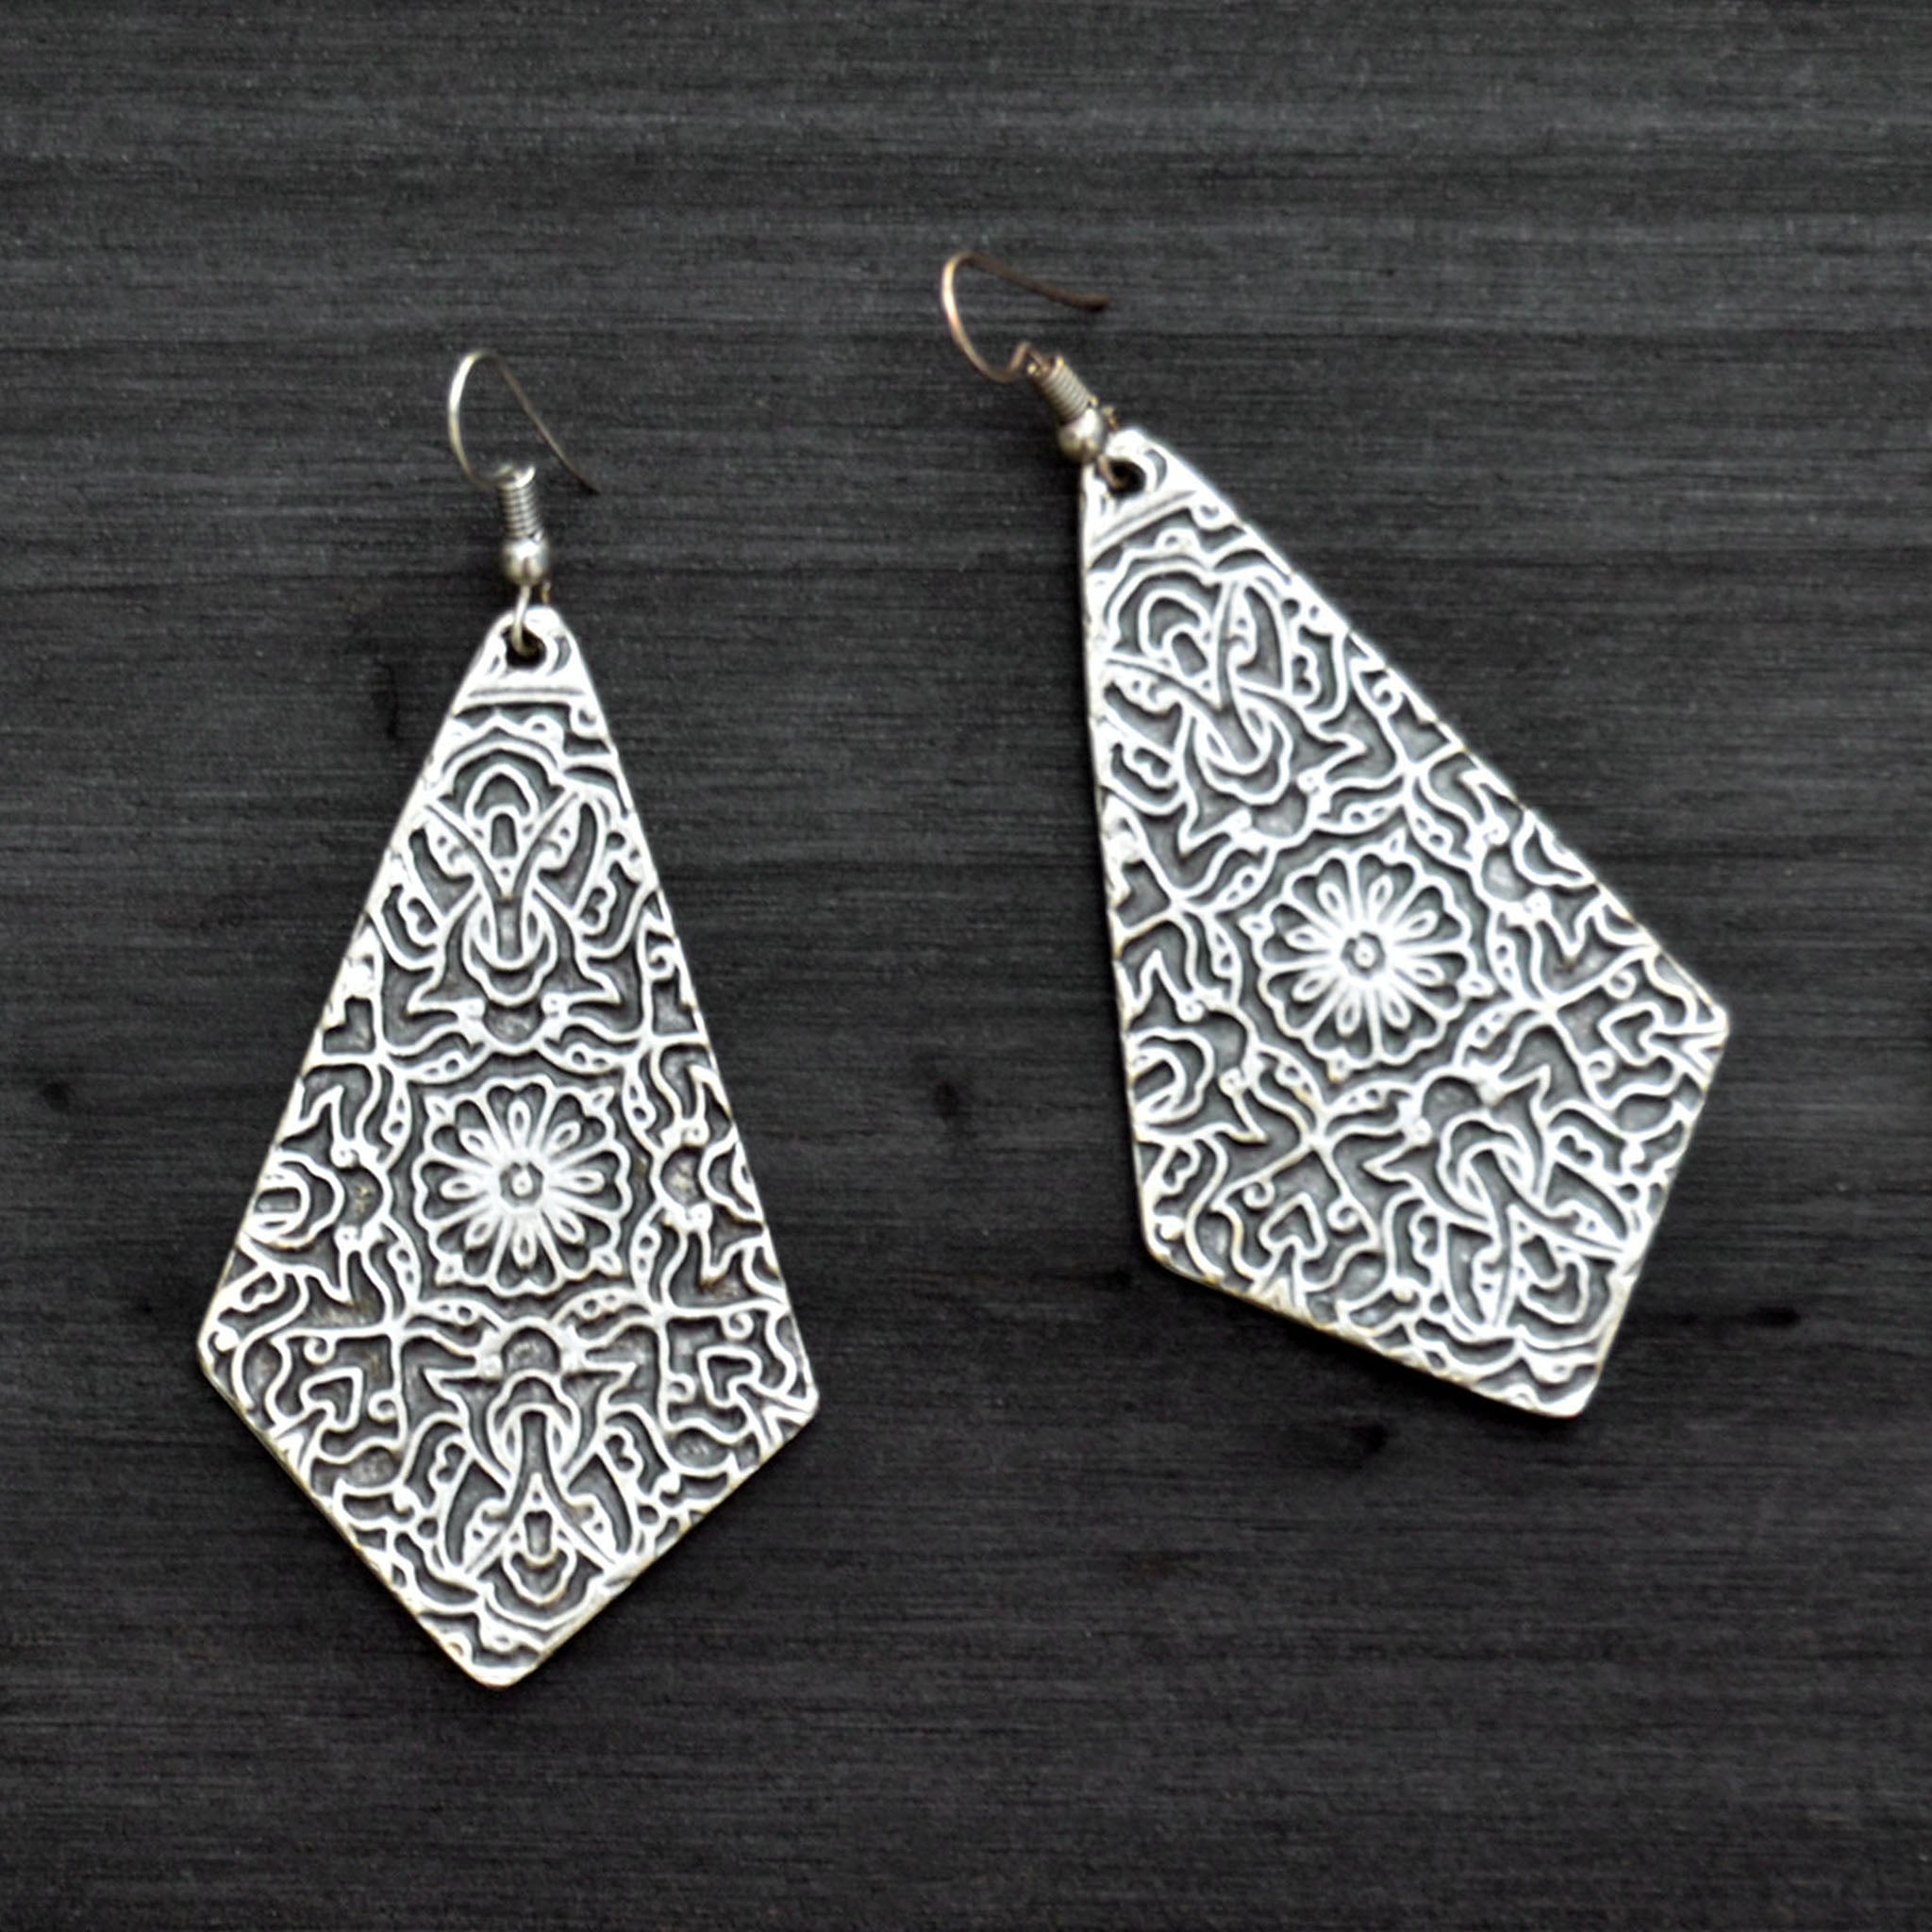 Large kite earrings